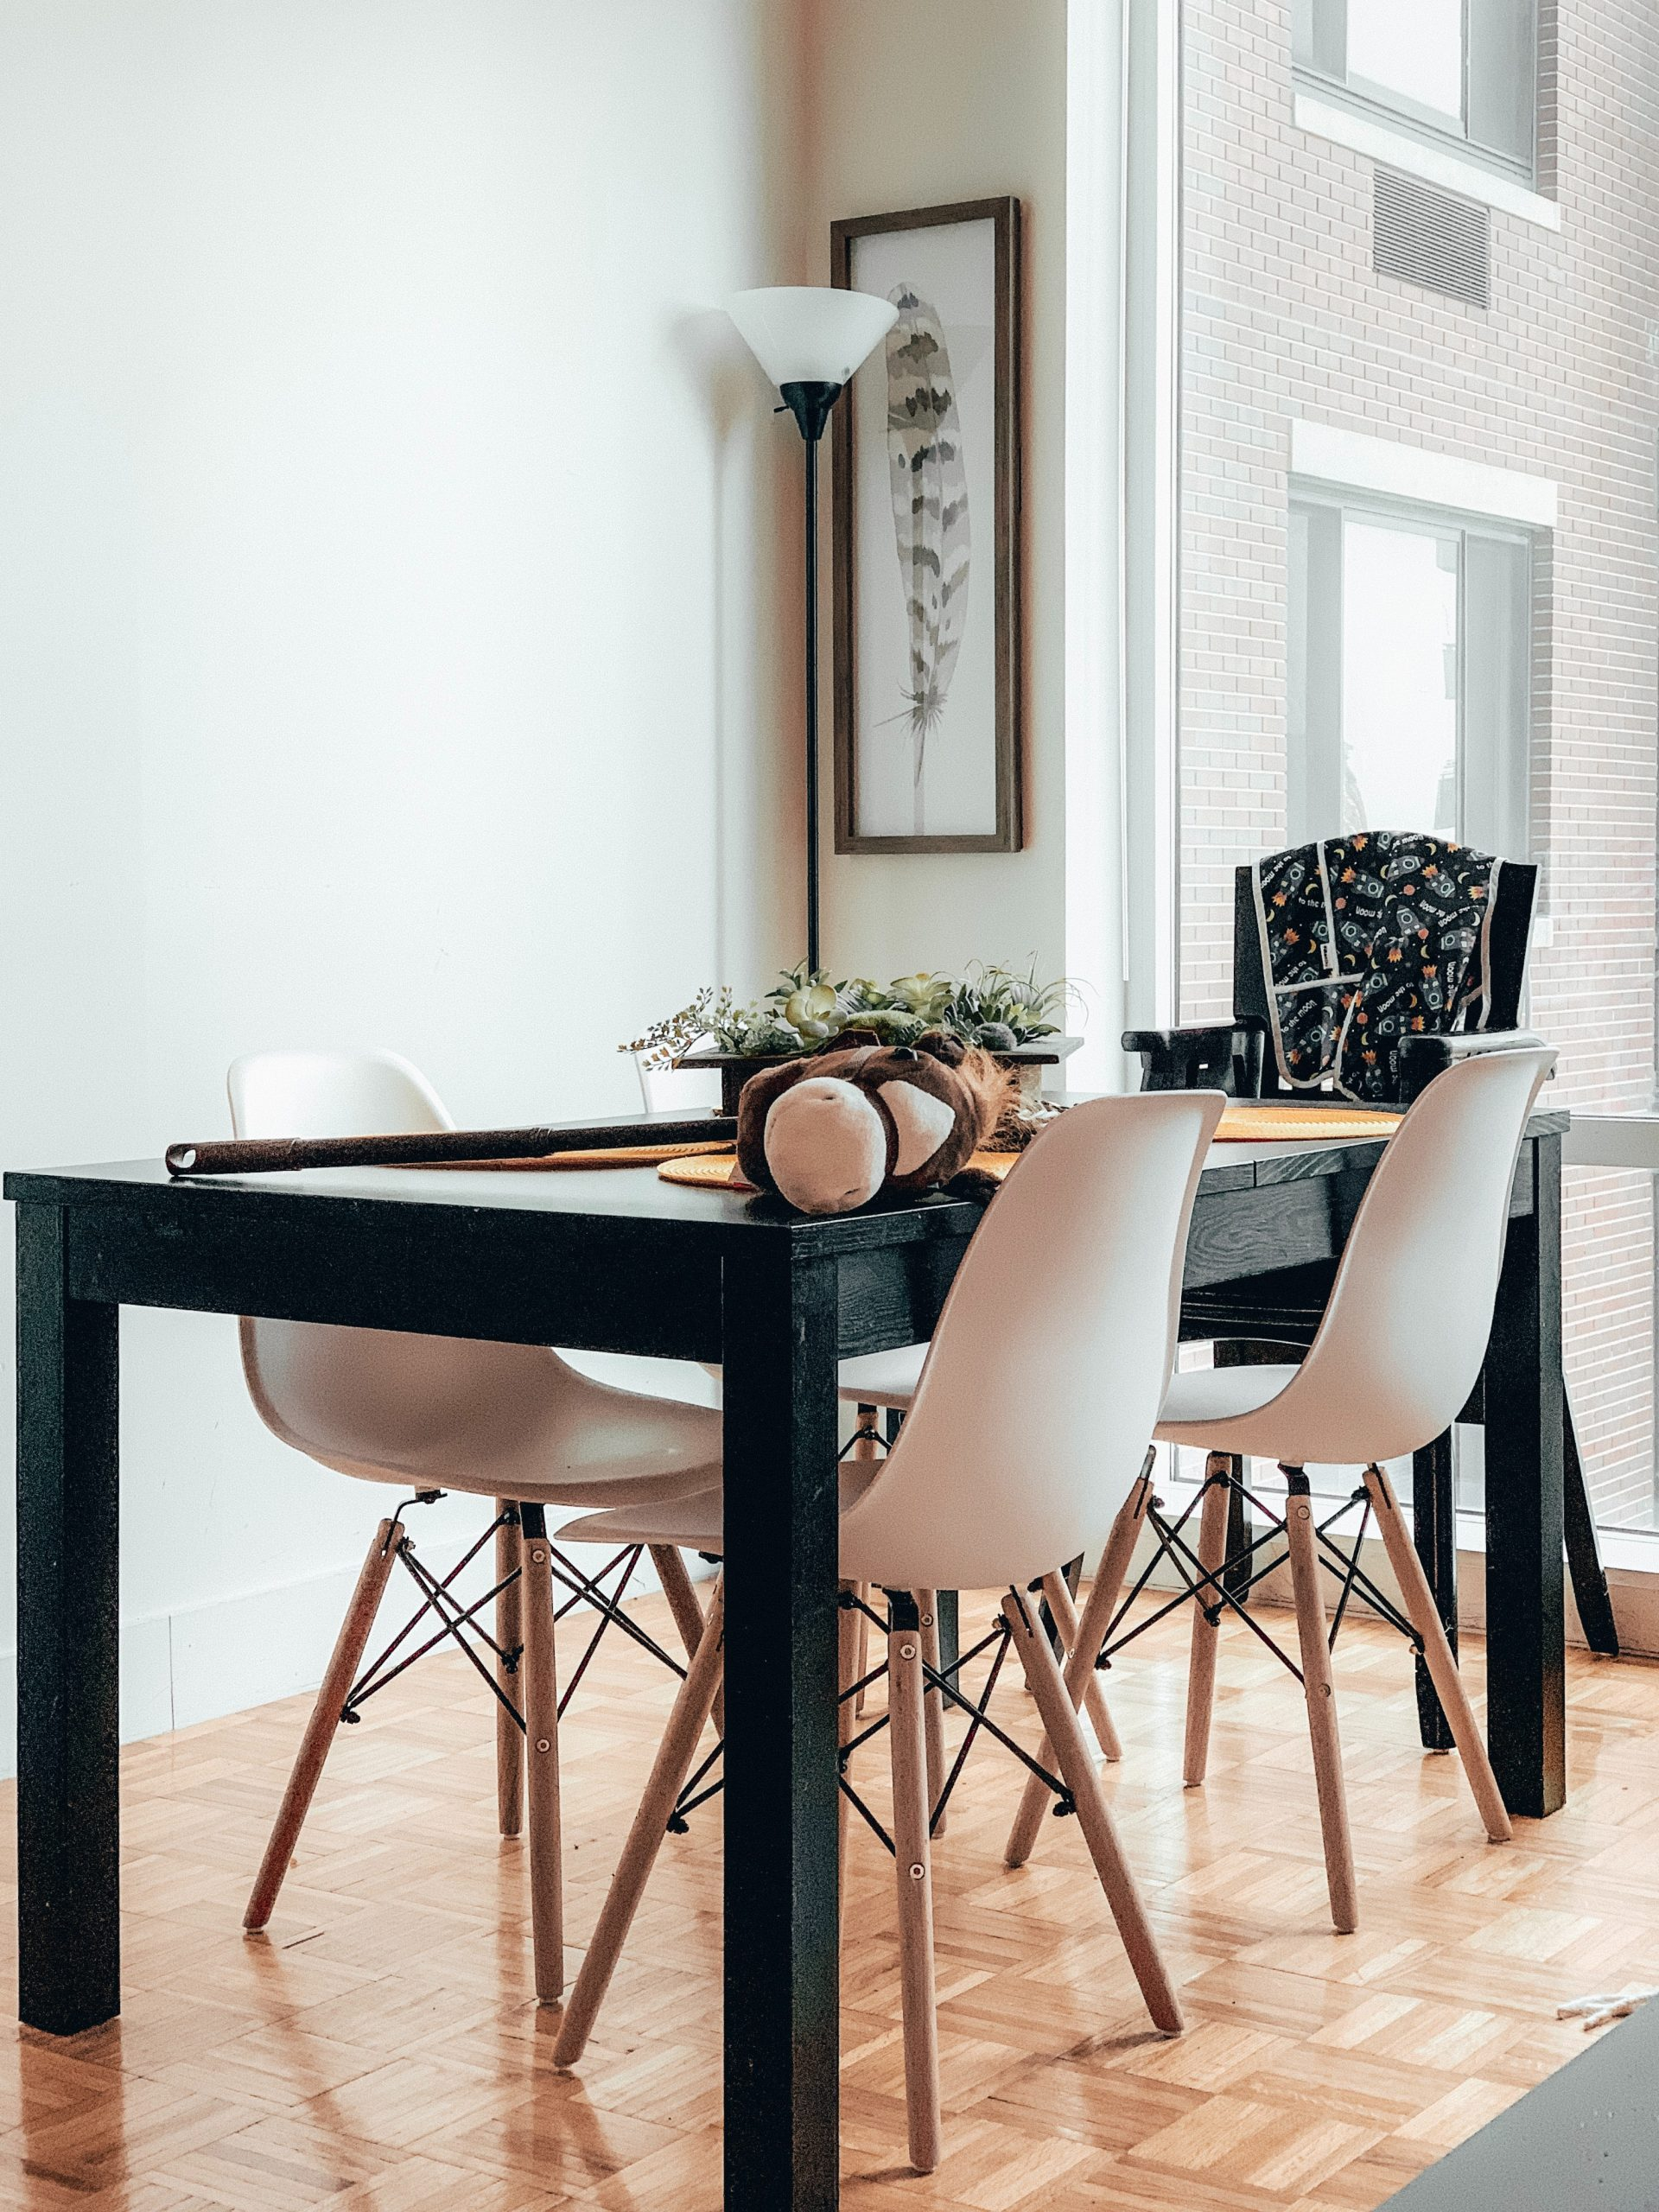 How To Create A Scandinavian Dining Room Design In 5 Simple Steps!